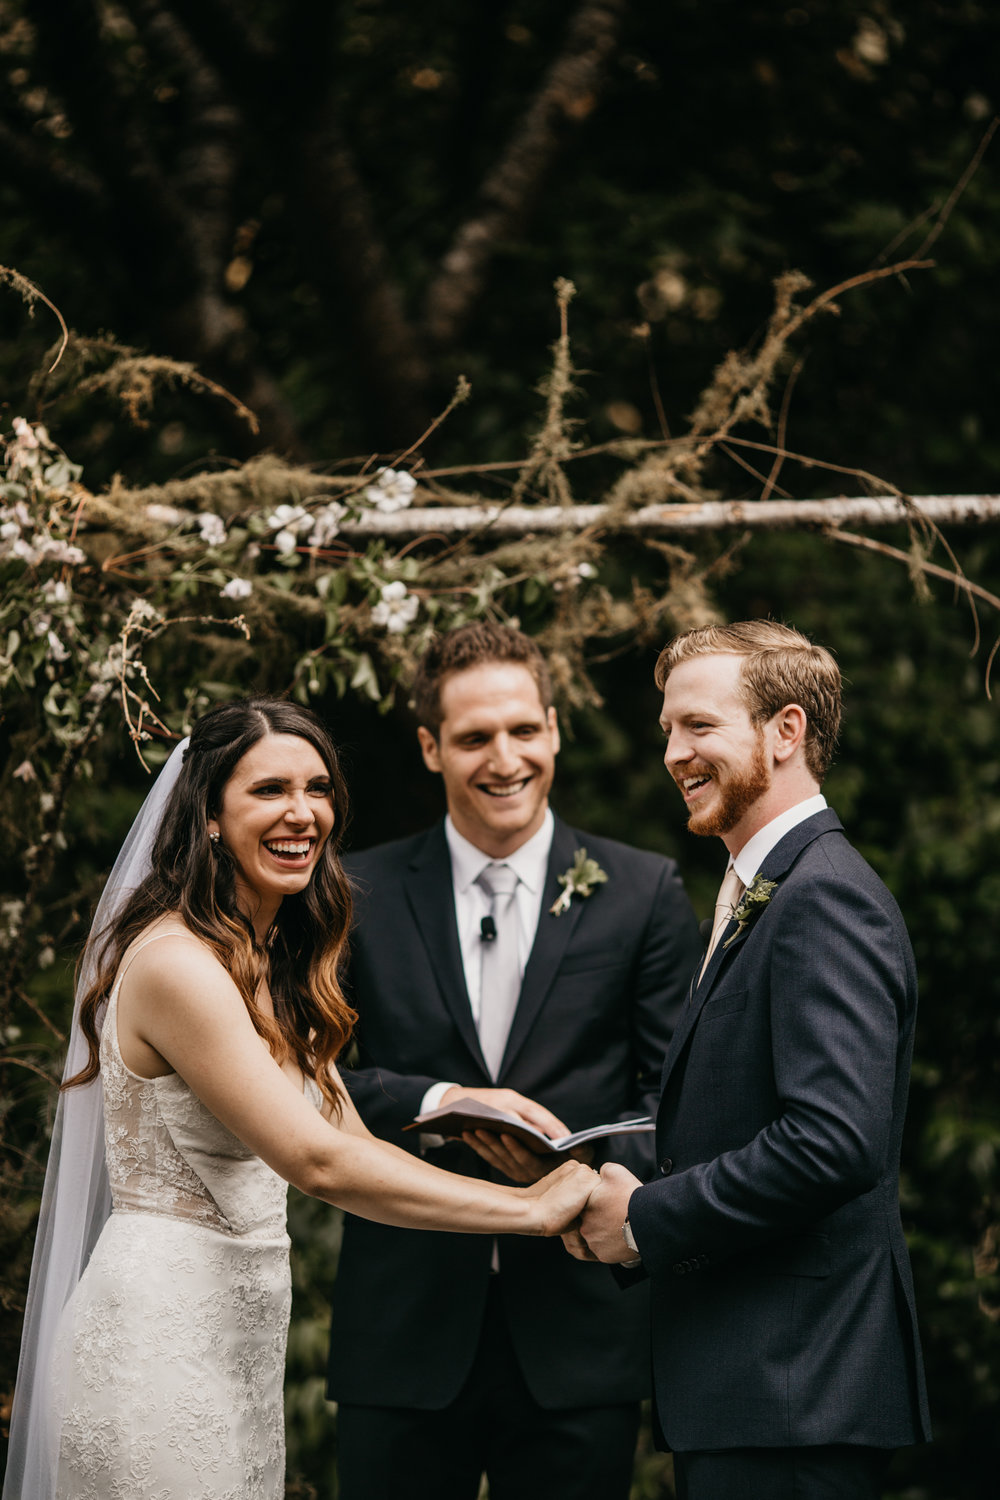 Max&SamPhoto_Seattle Wedding Photographer_Bellevue Robinswood House_087.jpg